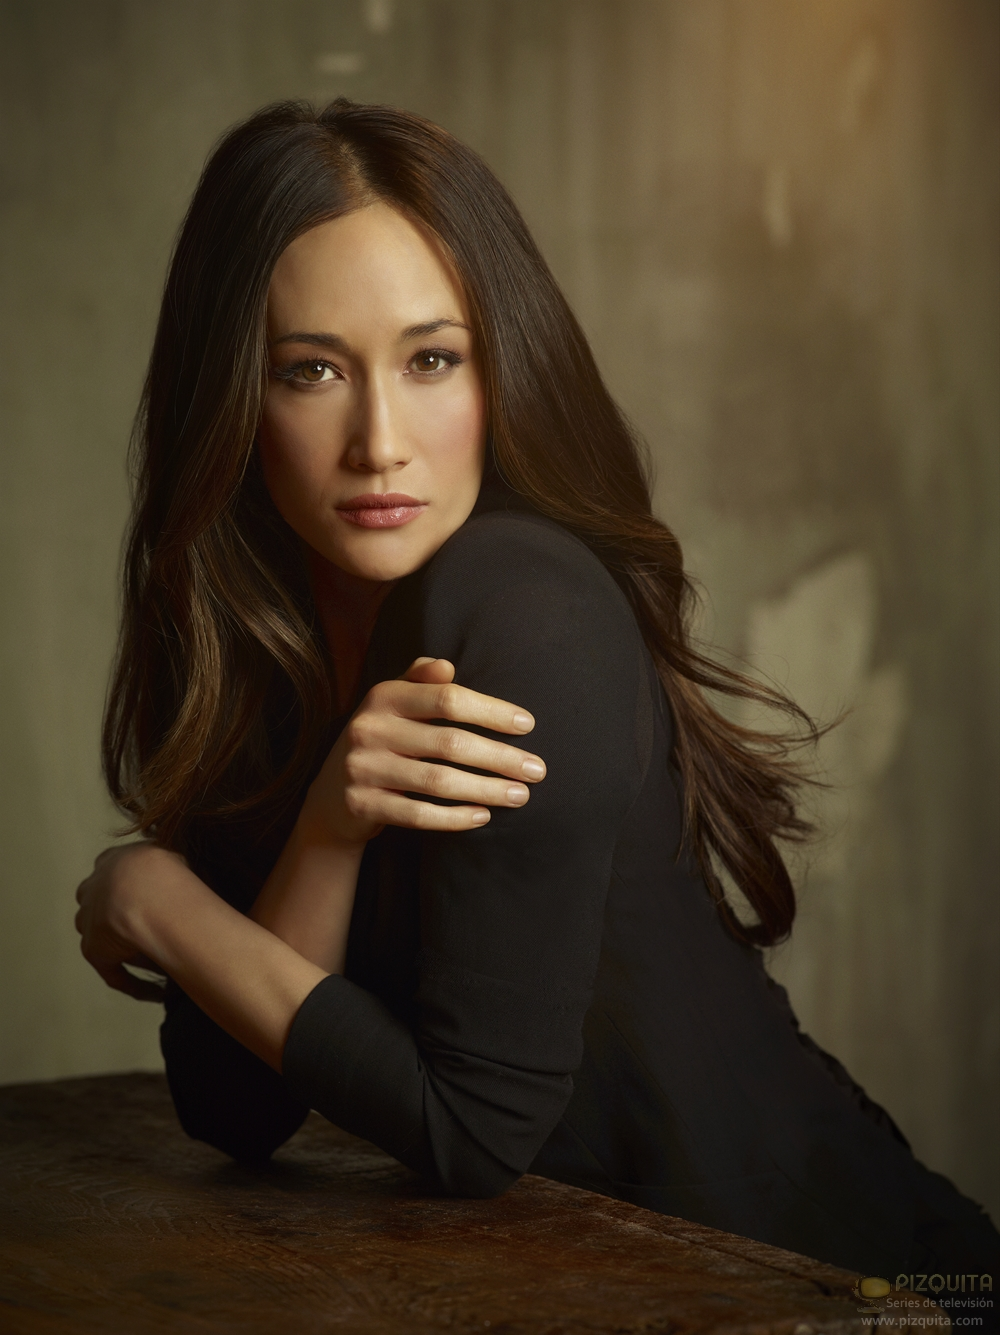 Nikita Nikita - Season 2 - Cast Promotional Photos